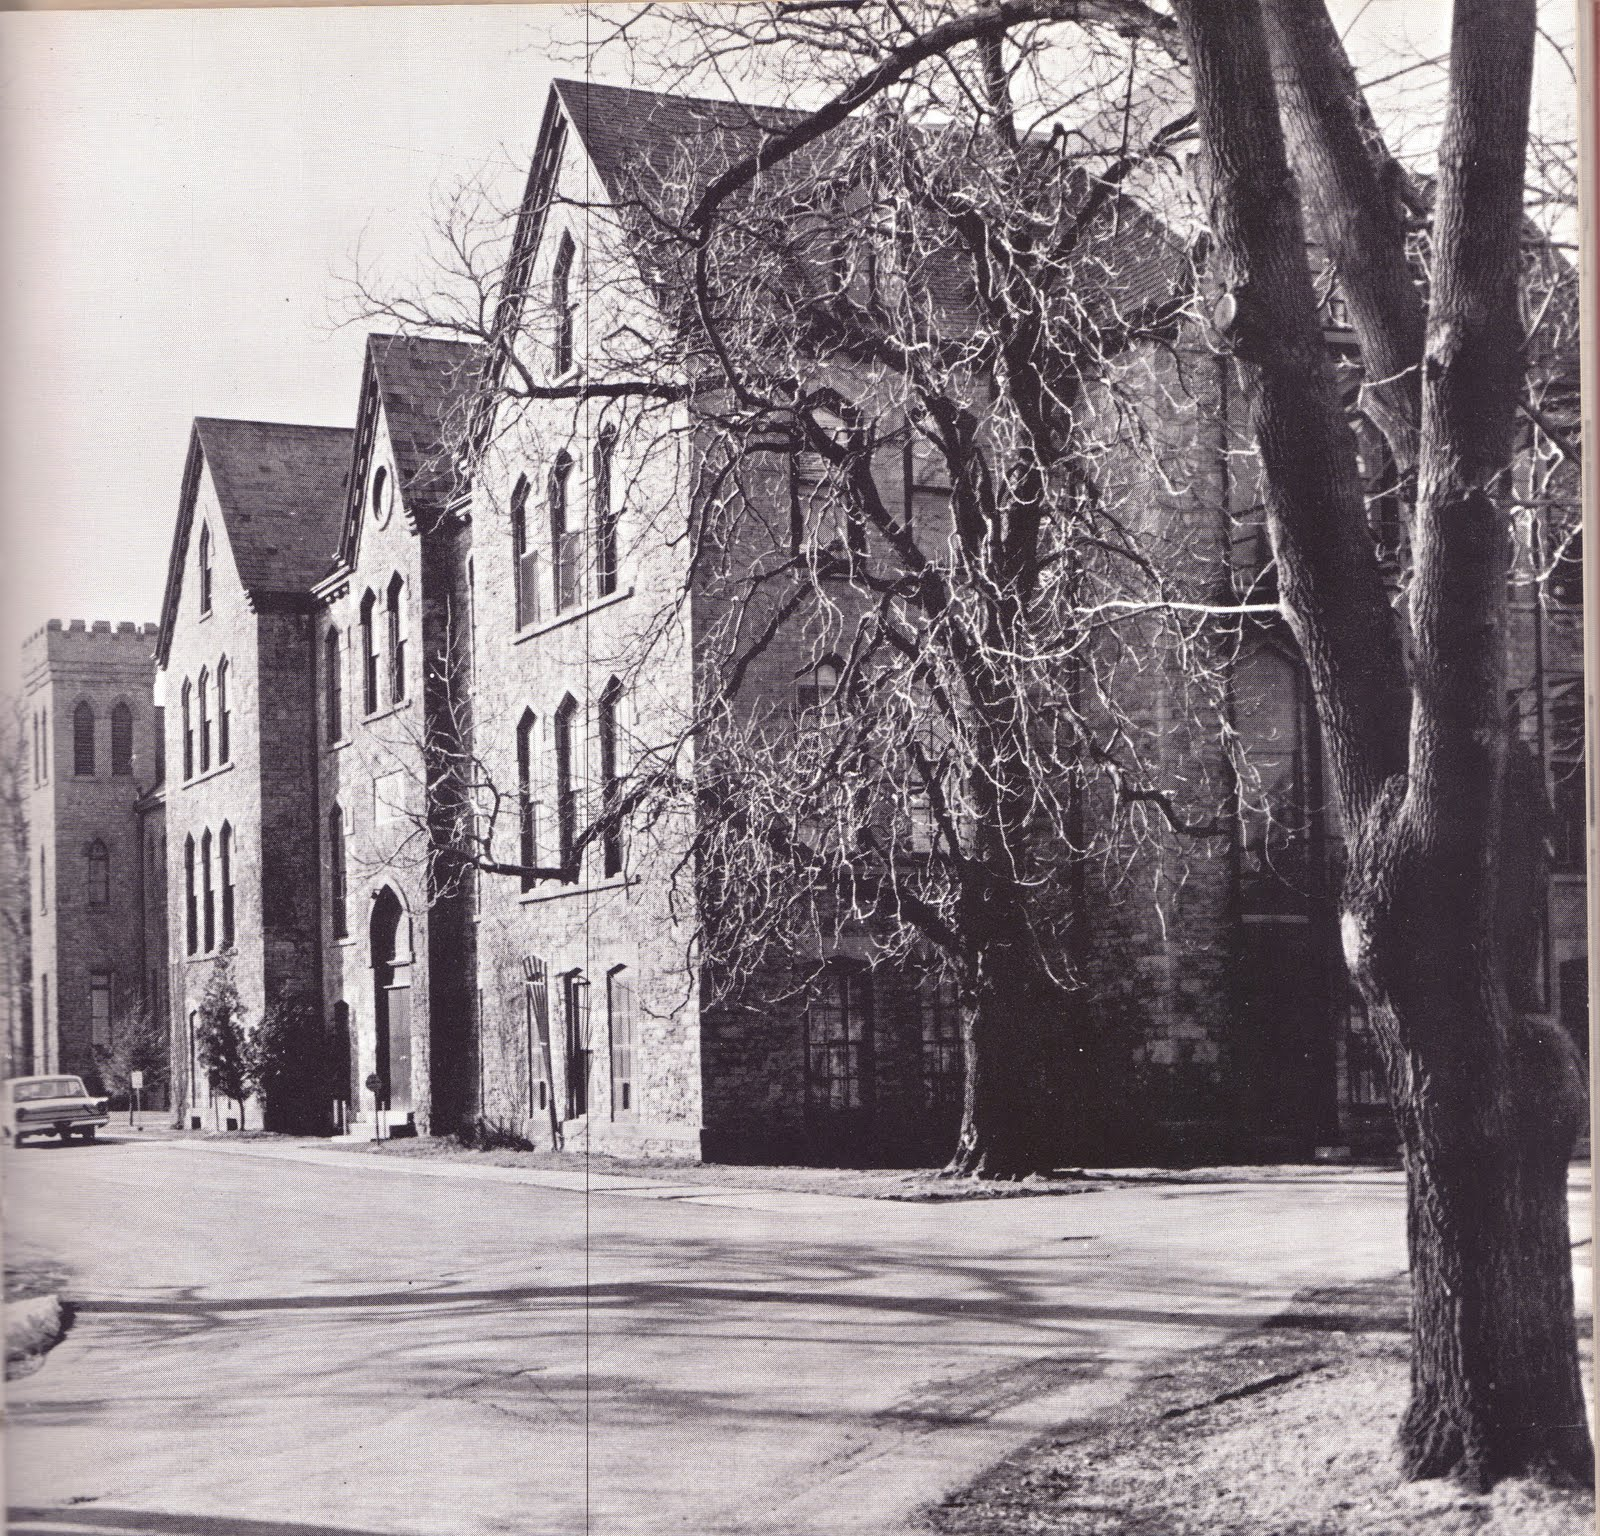 New york niagara county niagara university - The Picture Above Is From About 1961 And I Copied It From My Senior Yearbook It Shows The Three Interconnected Primary Buildings At Deveaux School